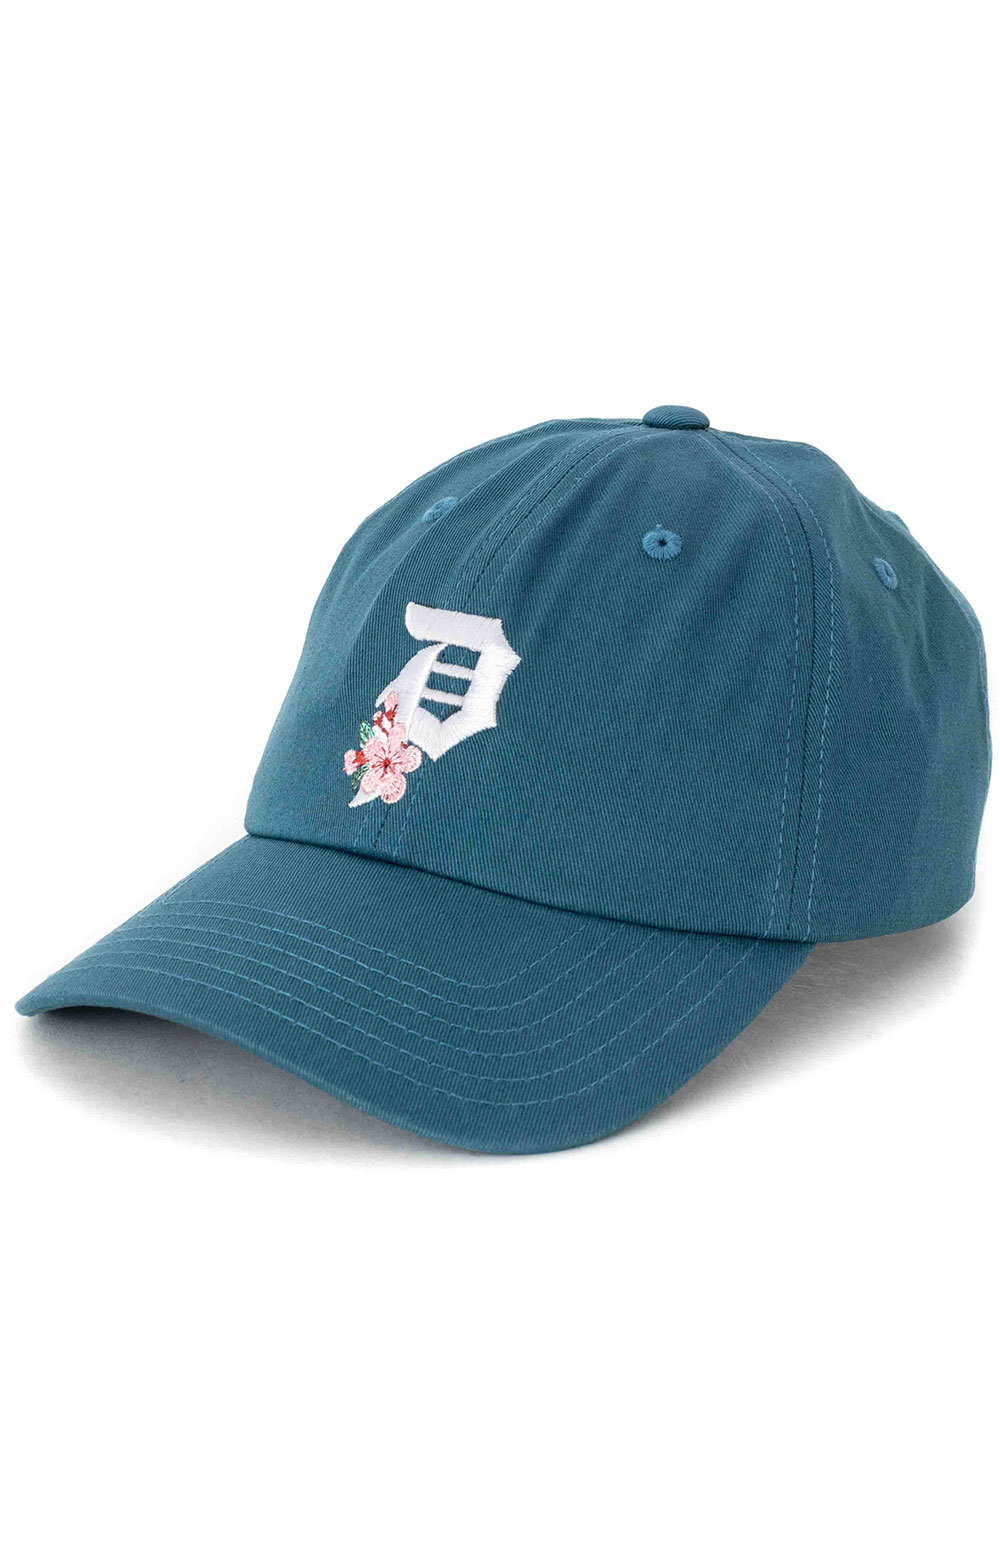 Dirty P Cherry Blossom Dad Hat - Blue